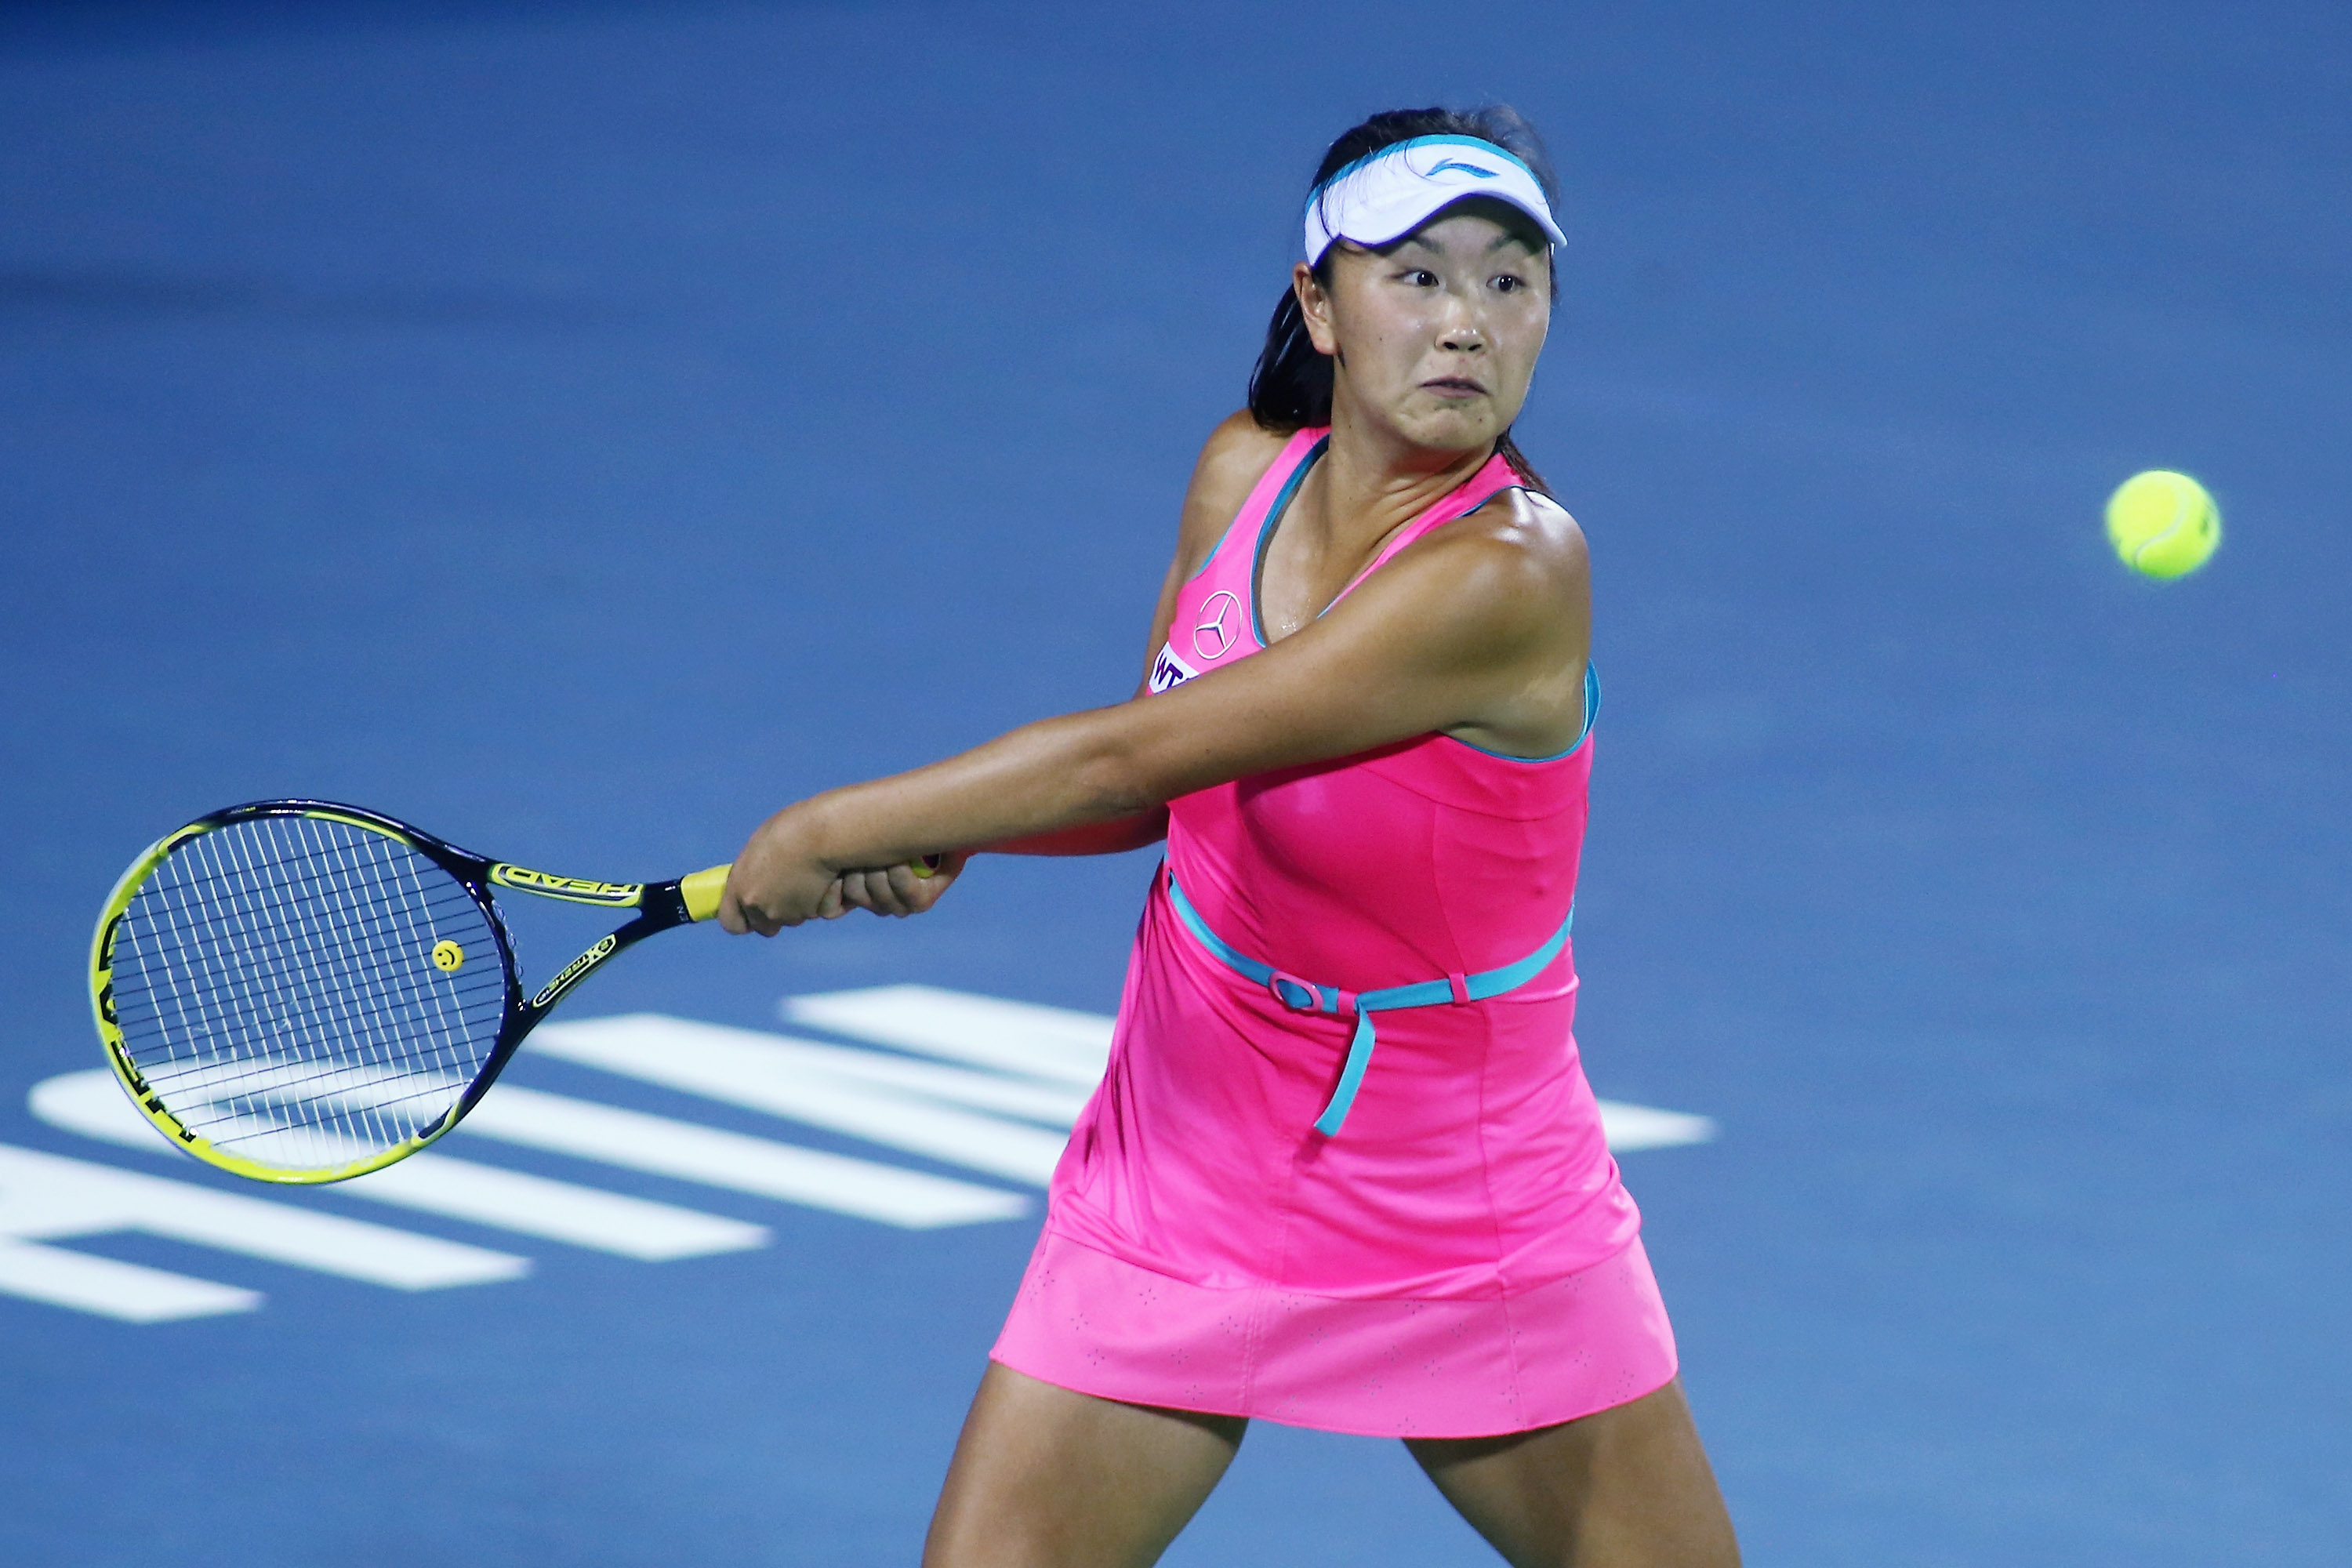 Shuai Peng of China returns a shot during her match against Mona Barthel.